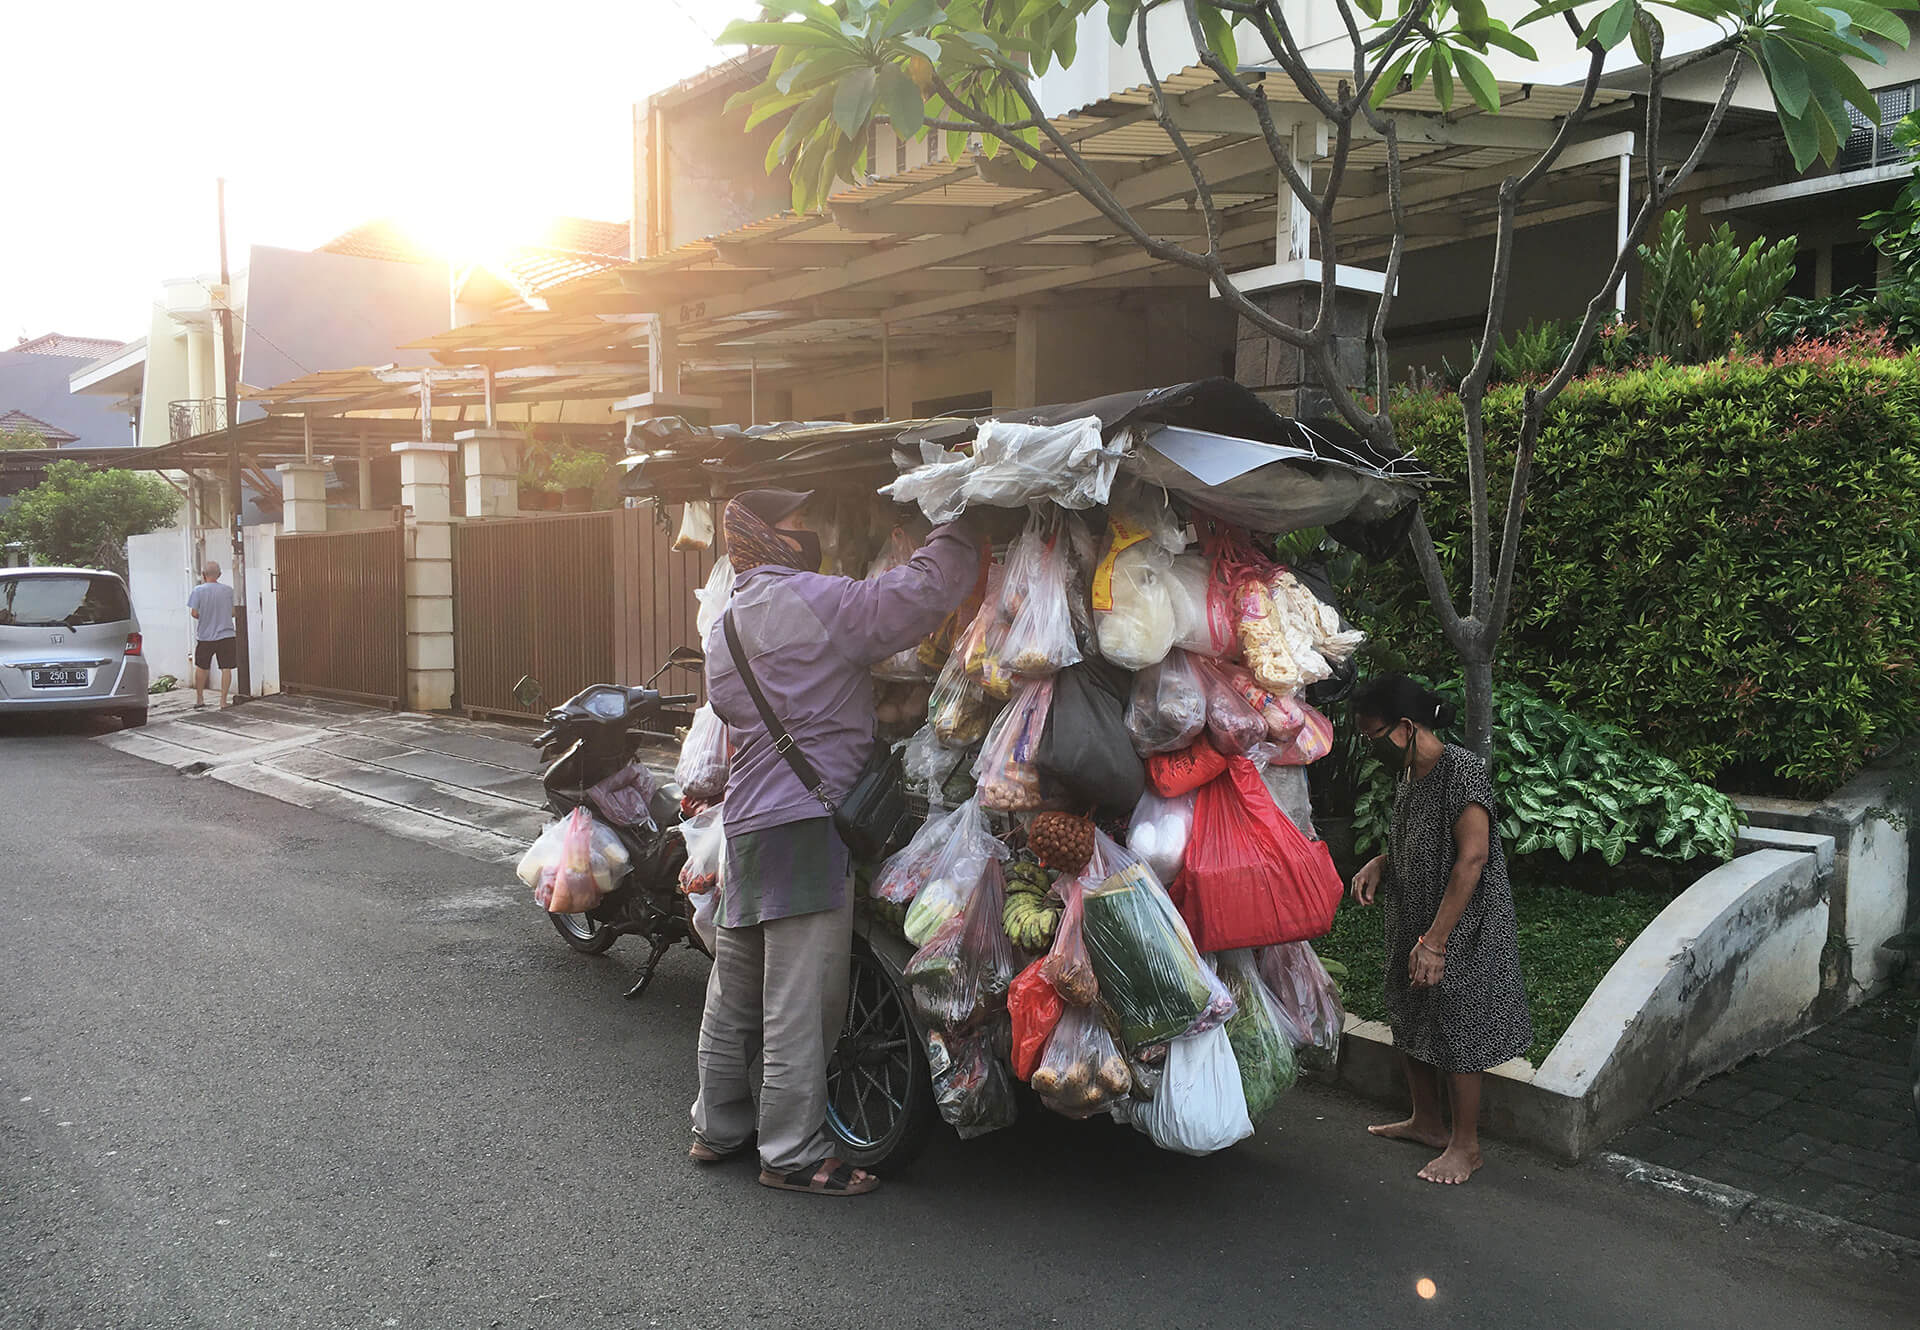 A local vendor selling vegetables in Jakarta during the pandemic | Rafael Miranti Architects | Design After COVID-19 | STIRworld